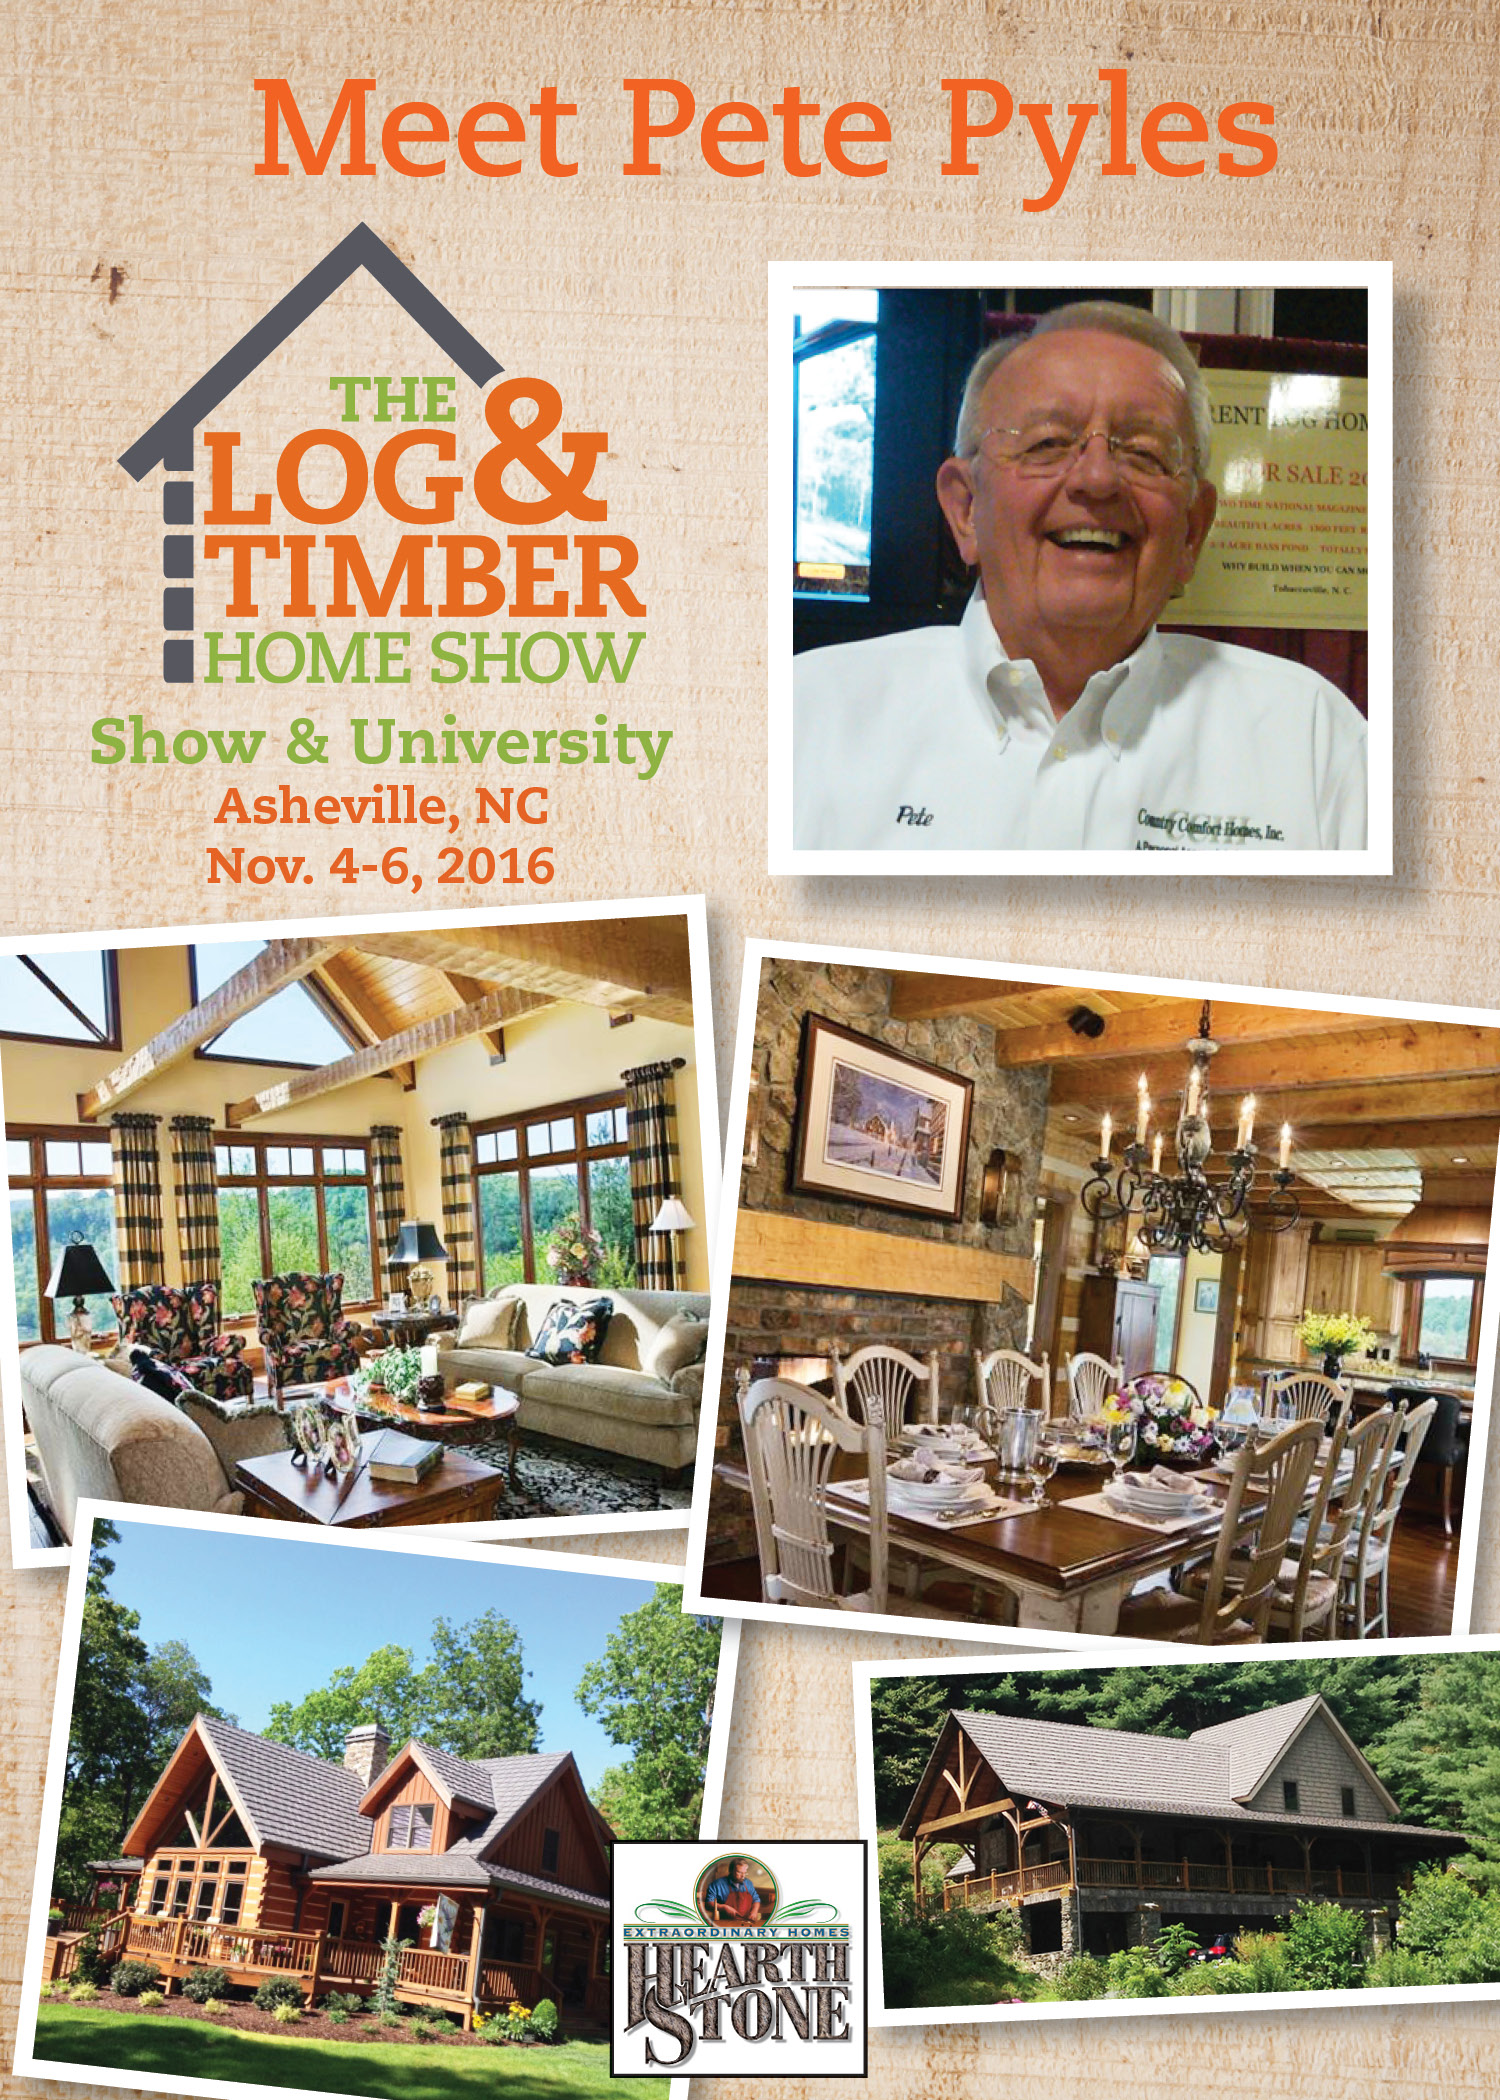 Pete Pyles|Hearthstone Log & Timber Homes| November 4-6, 2016| Log & Timber Home Show